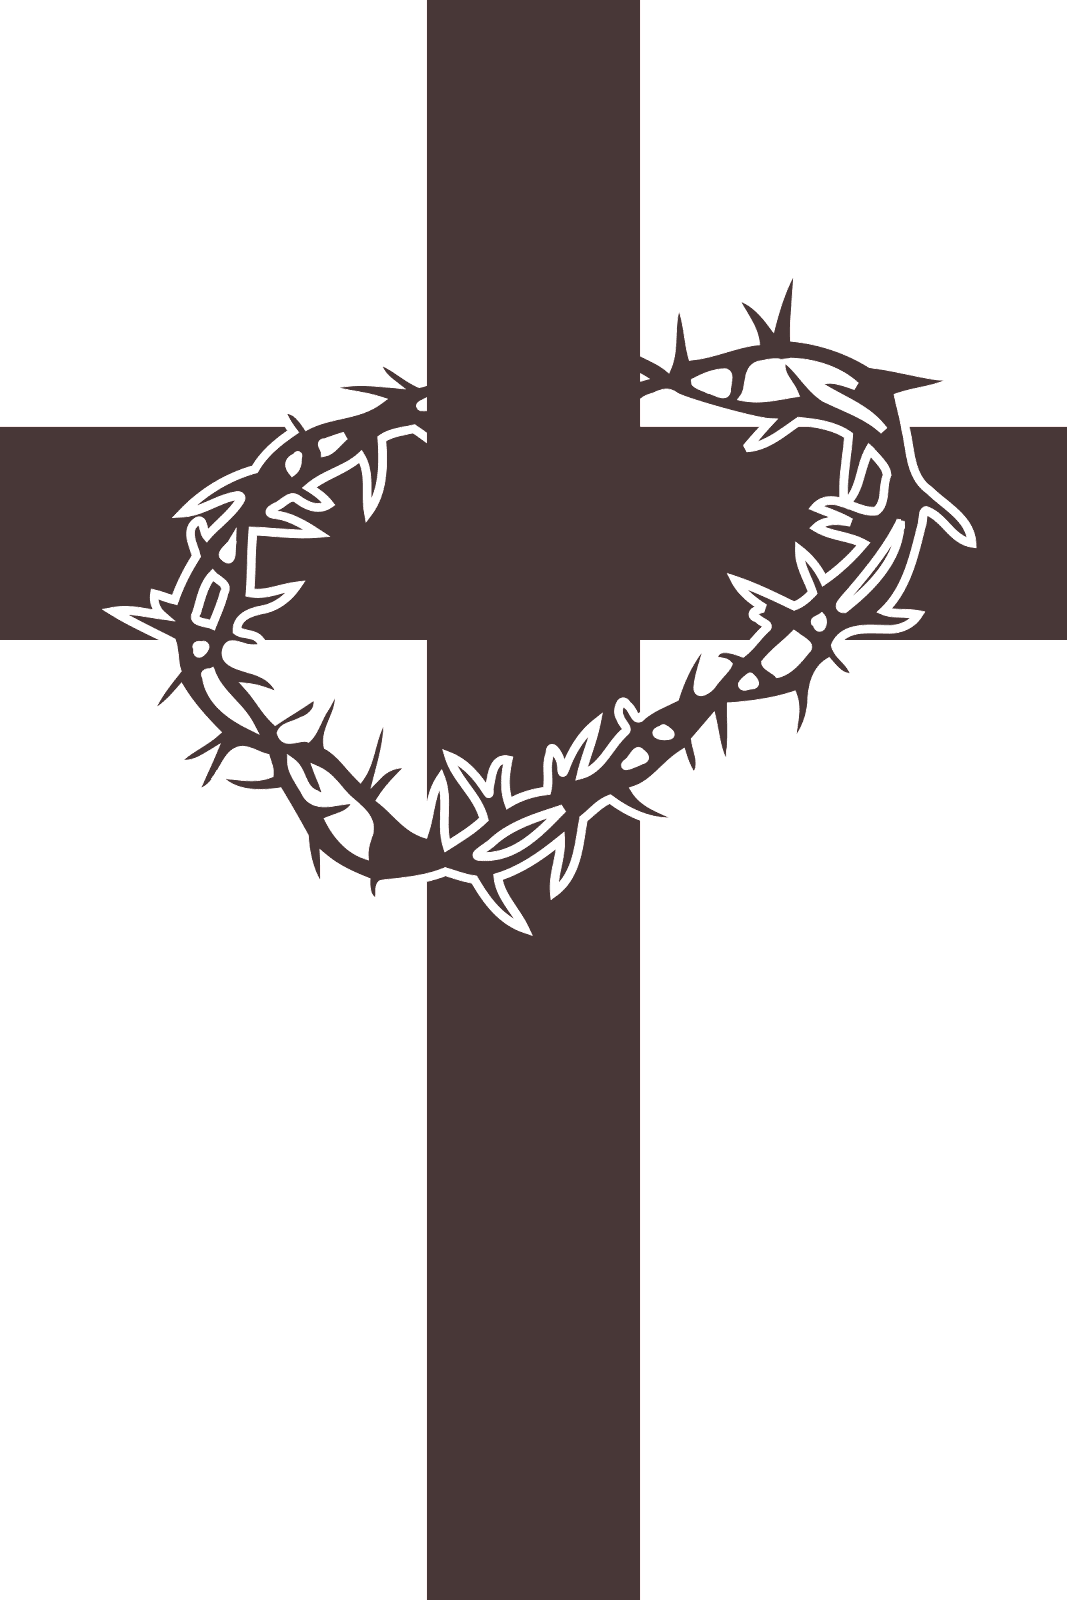 Clipart of Cross and Thorns.